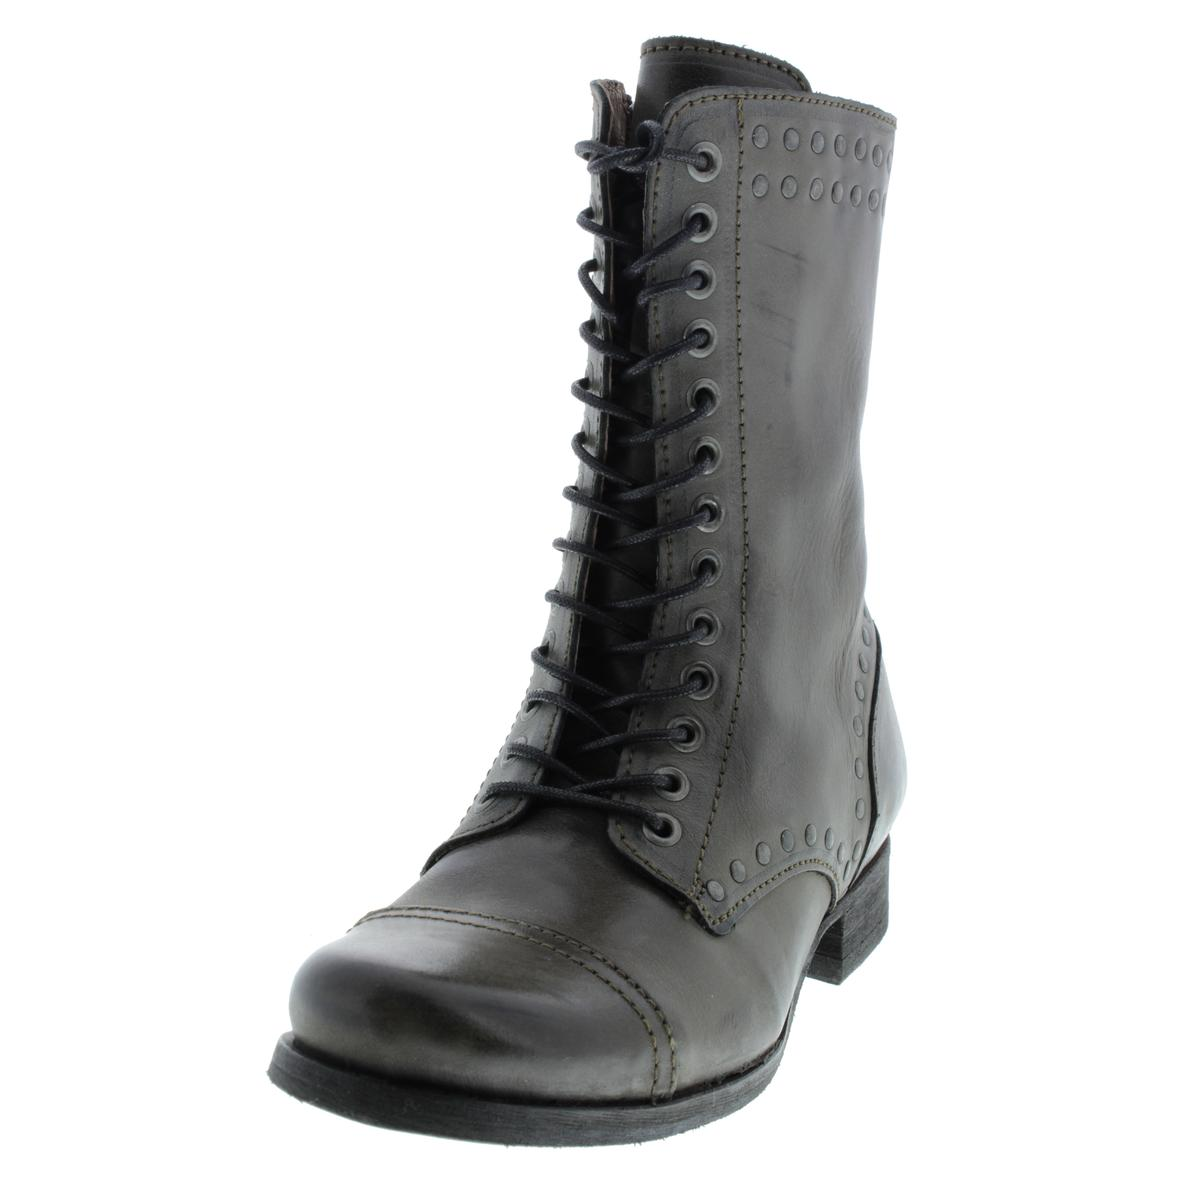 Diesel 2089 Womens The Wild Land Arthik Leather Combat Lace-Up ...